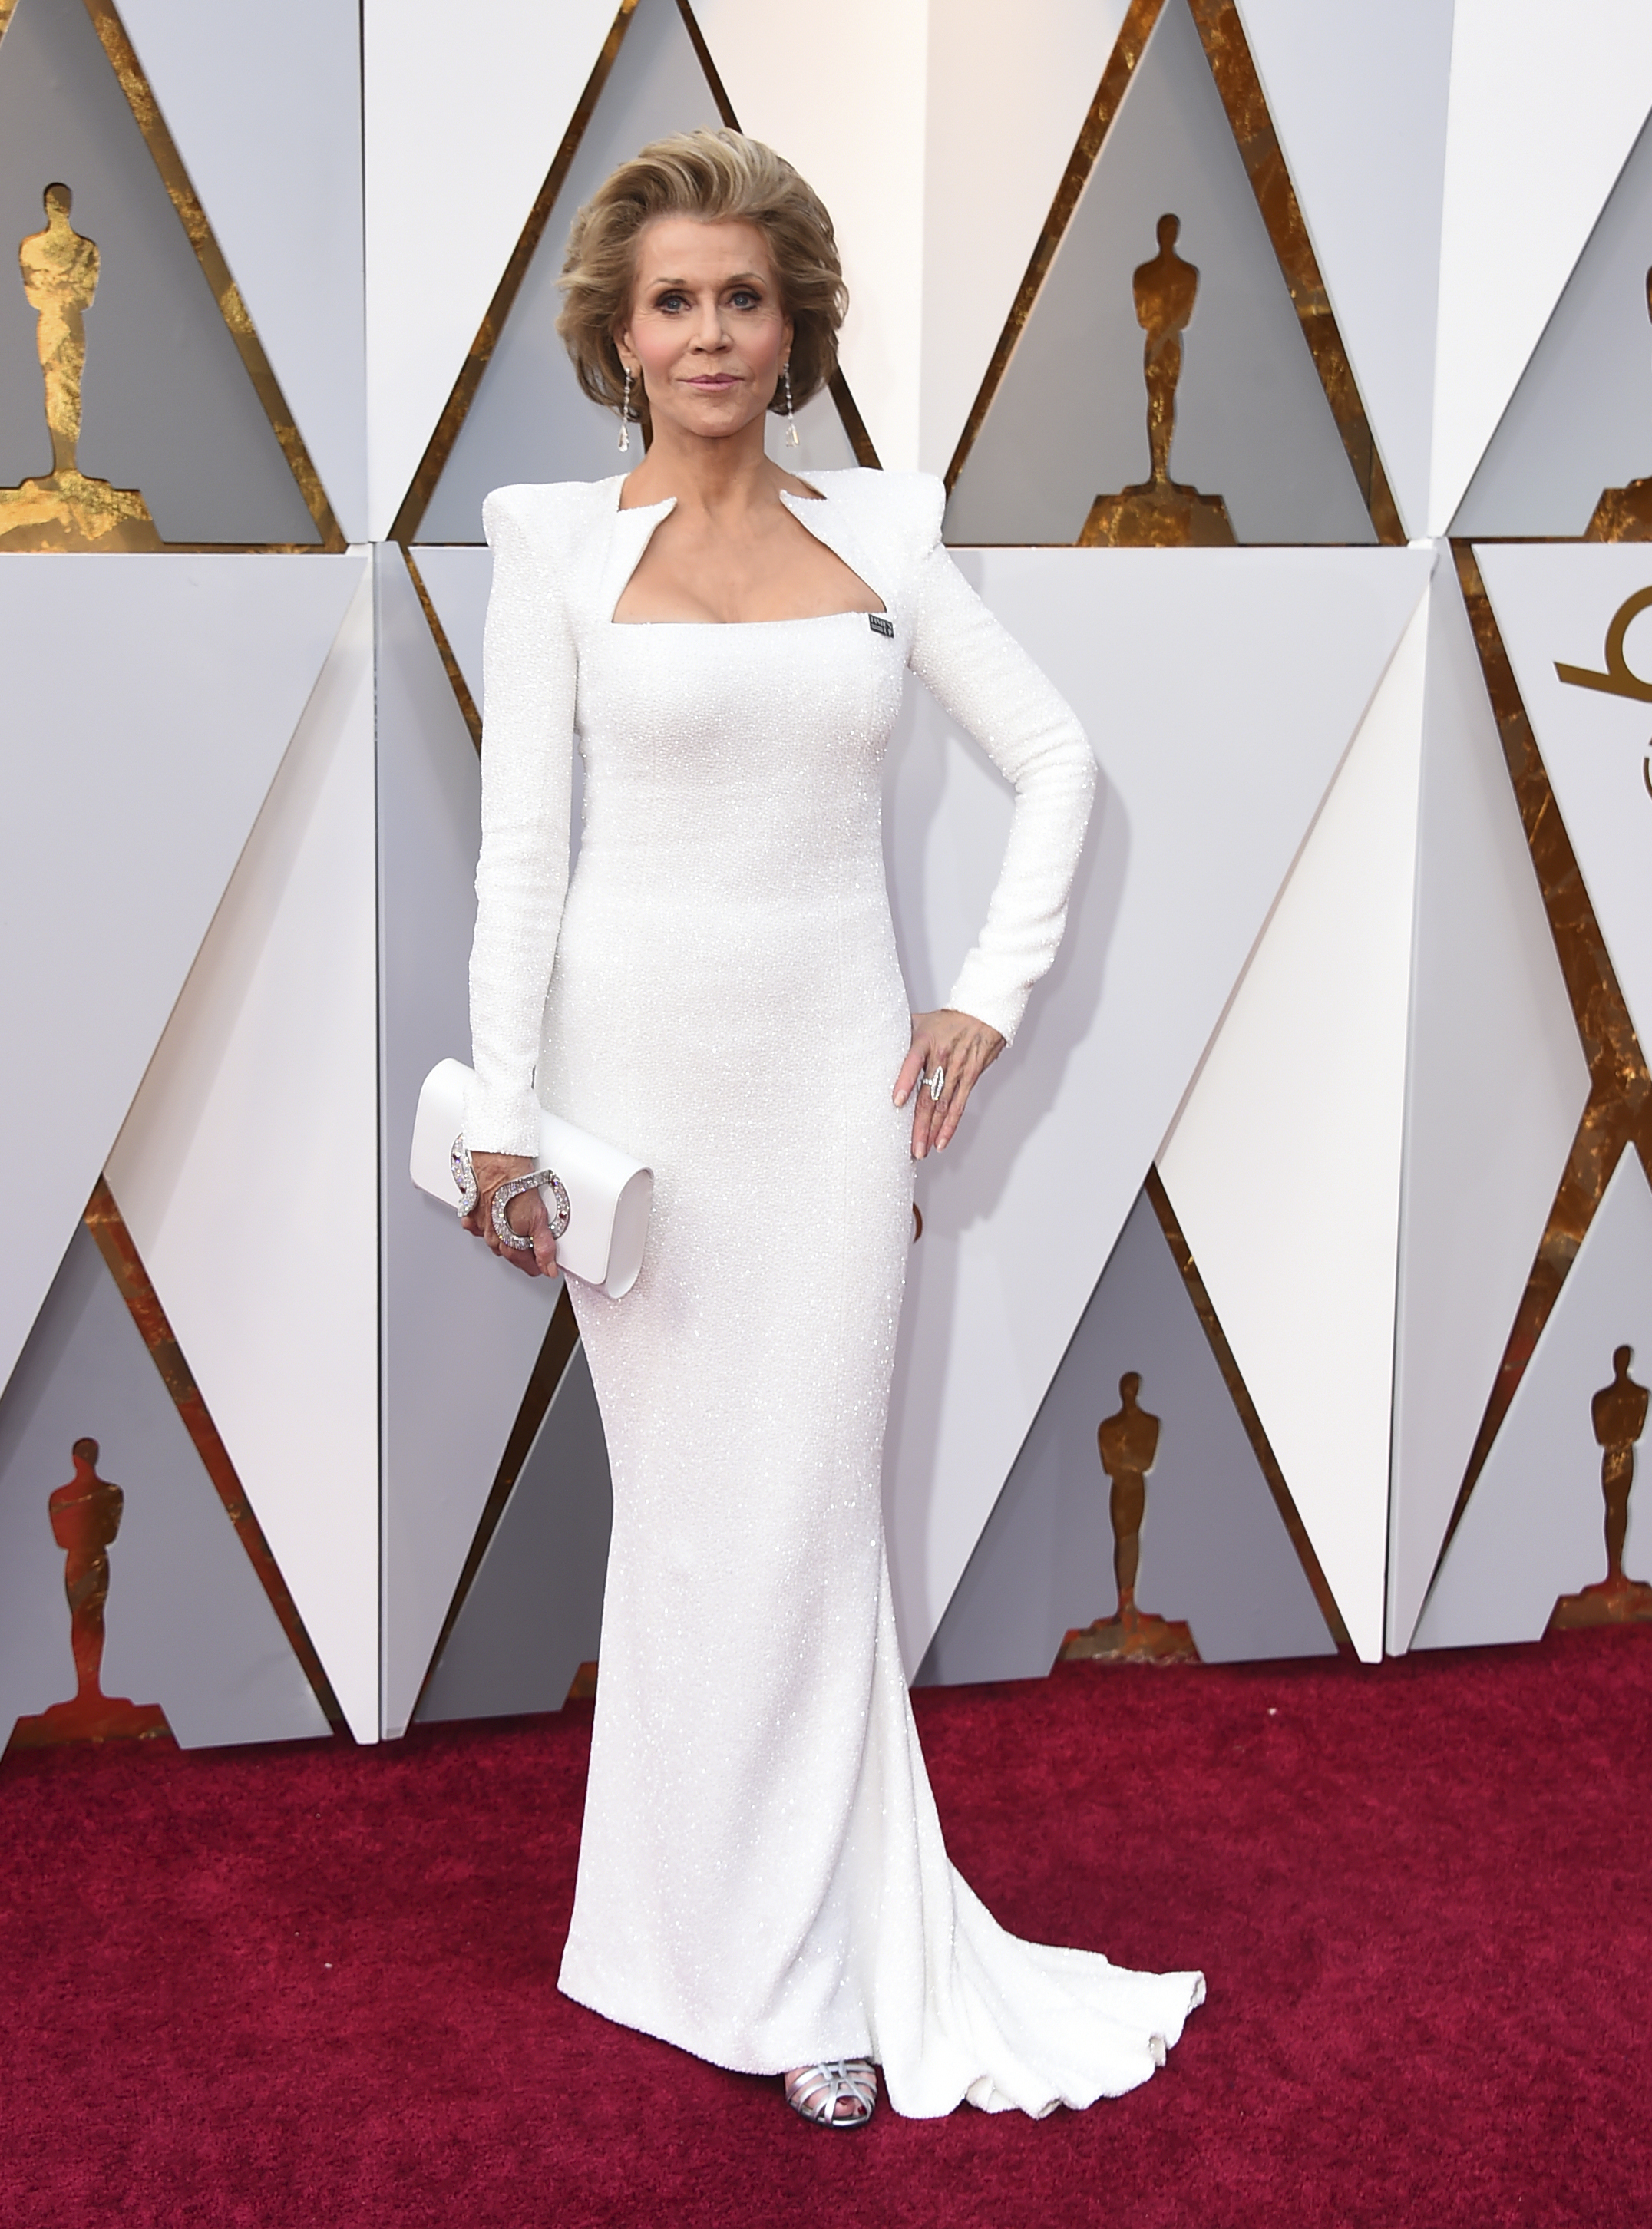 <div class='meta'><div class='origin-logo' data-origin='none'></div><span class='caption-text' data-credit='Jordan Strauss/Invision/AP'>Jane Fonda arrives at the Oscars on Sunday, March 4, 2018, at the Dolby Theatre in Los Angeles.</span></div>